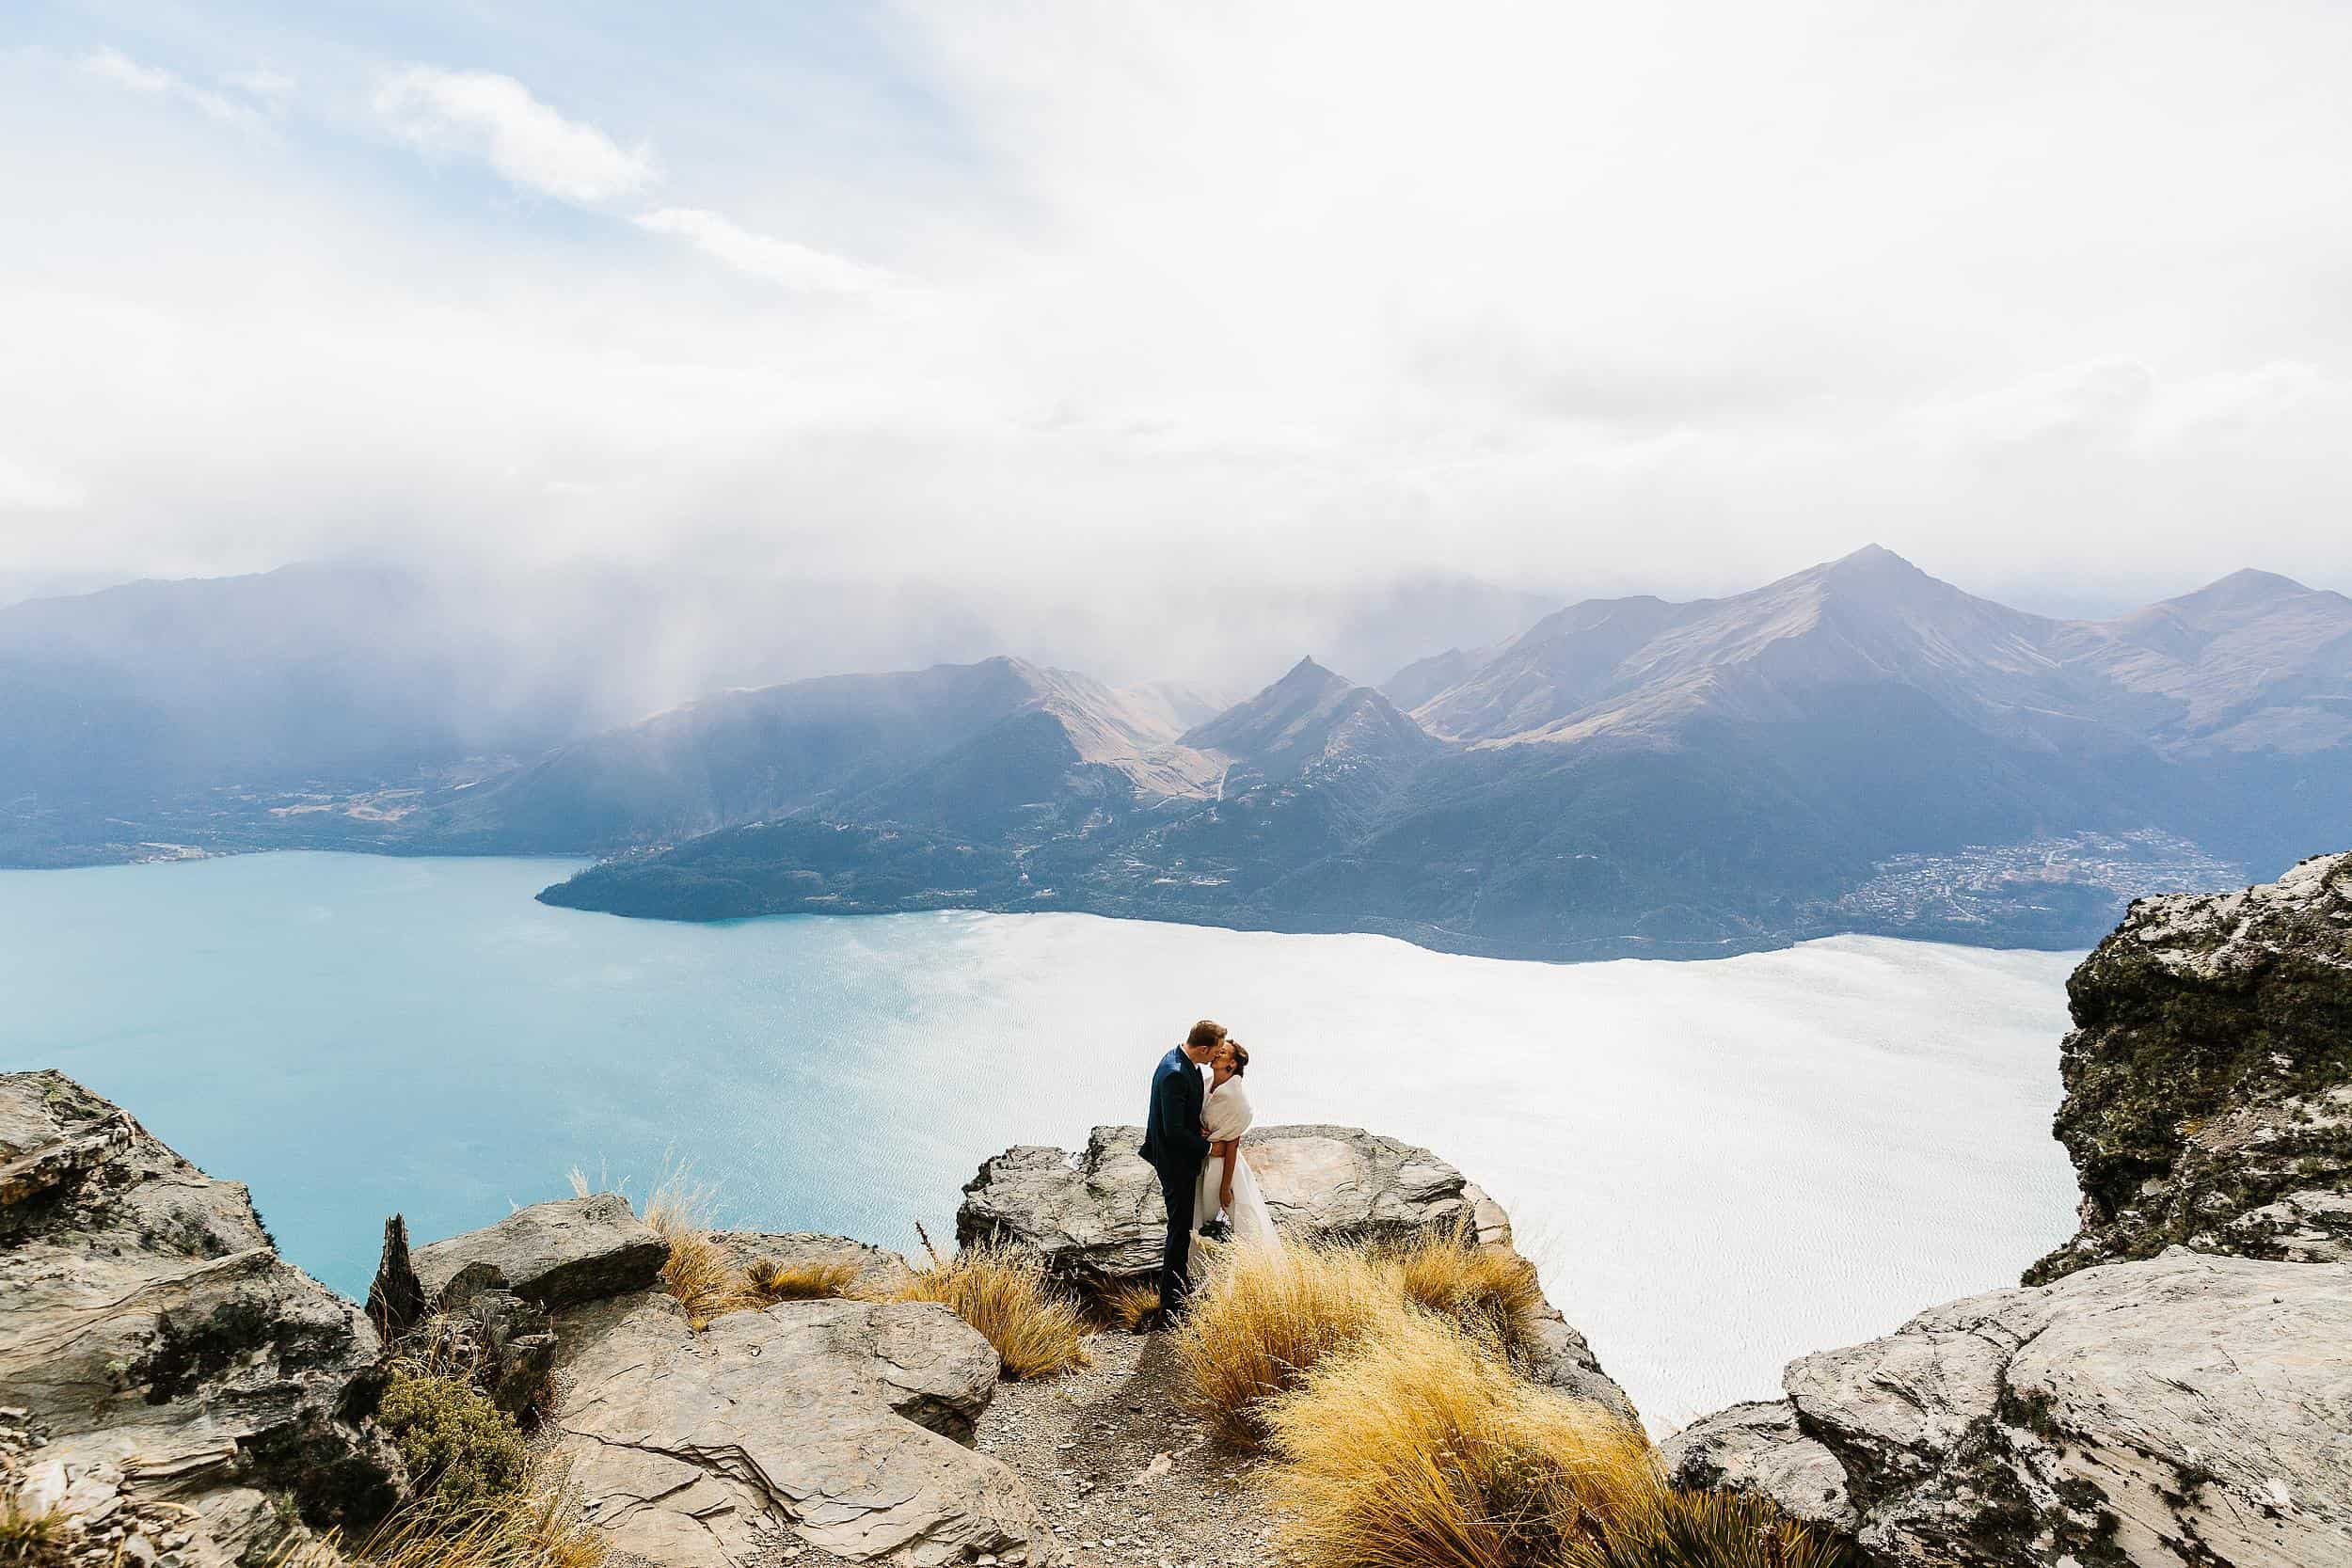 Alisha & Michael's Queenstown Wedding